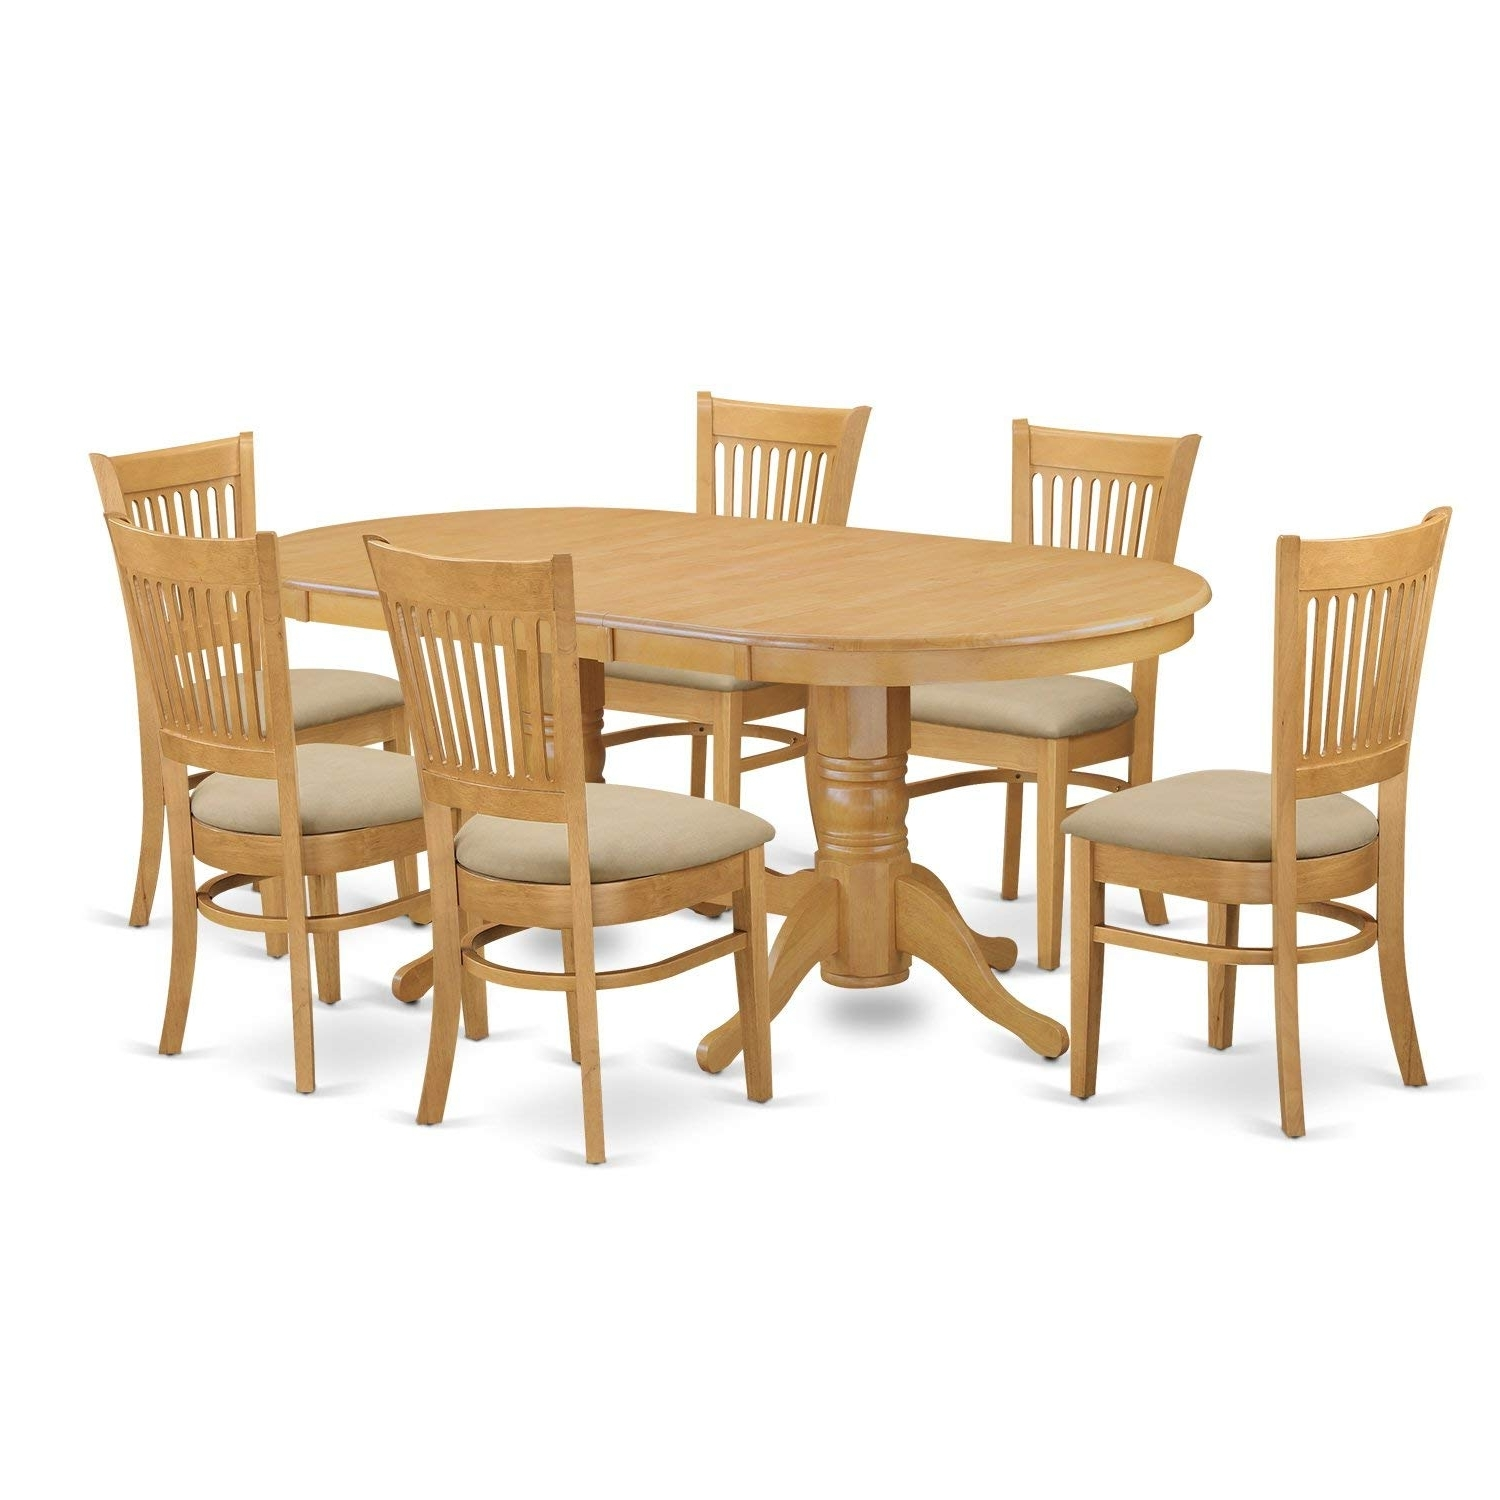 Amazon: East West Furniture Vanc7 Oak C 7 Piece Dining Table Set With Current Craftsman 7 Piece Rectangle Extension Dining Sets With Side Chairs (View 7 of 25)